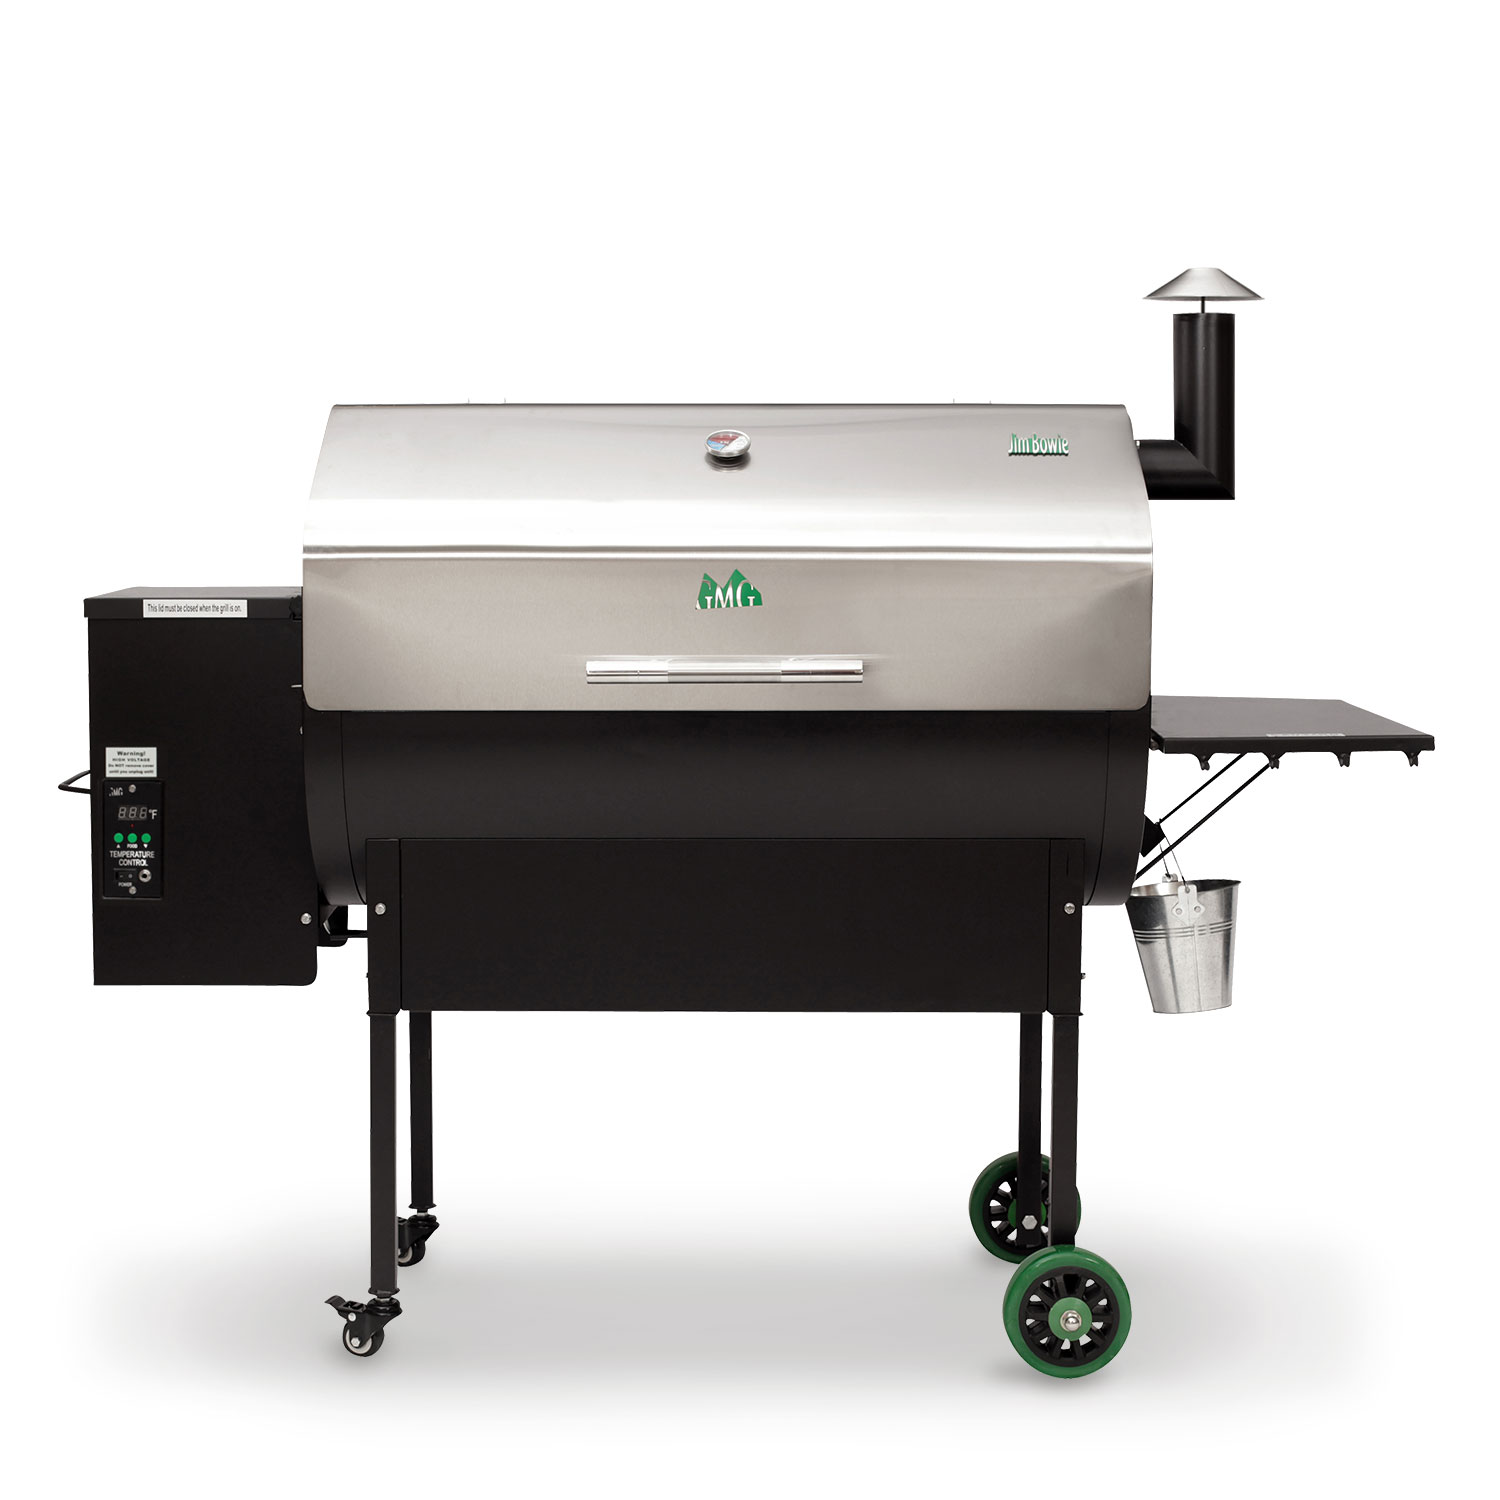 Bbq Grills, Lawn And Garden, Hardware Store, Local Hardware Store, Outdoor Furniture, Lawn Equipment, Power Tools, Flowers, Paint, Tools, Tool Repair, DIY Projects, Outdoor Fireplaces, Bird Feeders, Pet Food